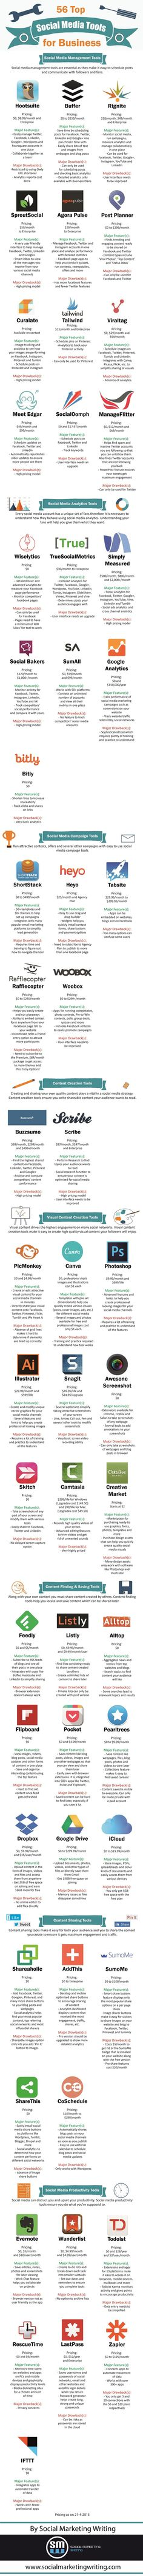 #Social #Infographic: 56 Awesome Tools for an EPIC Social Media Marketing Strategy